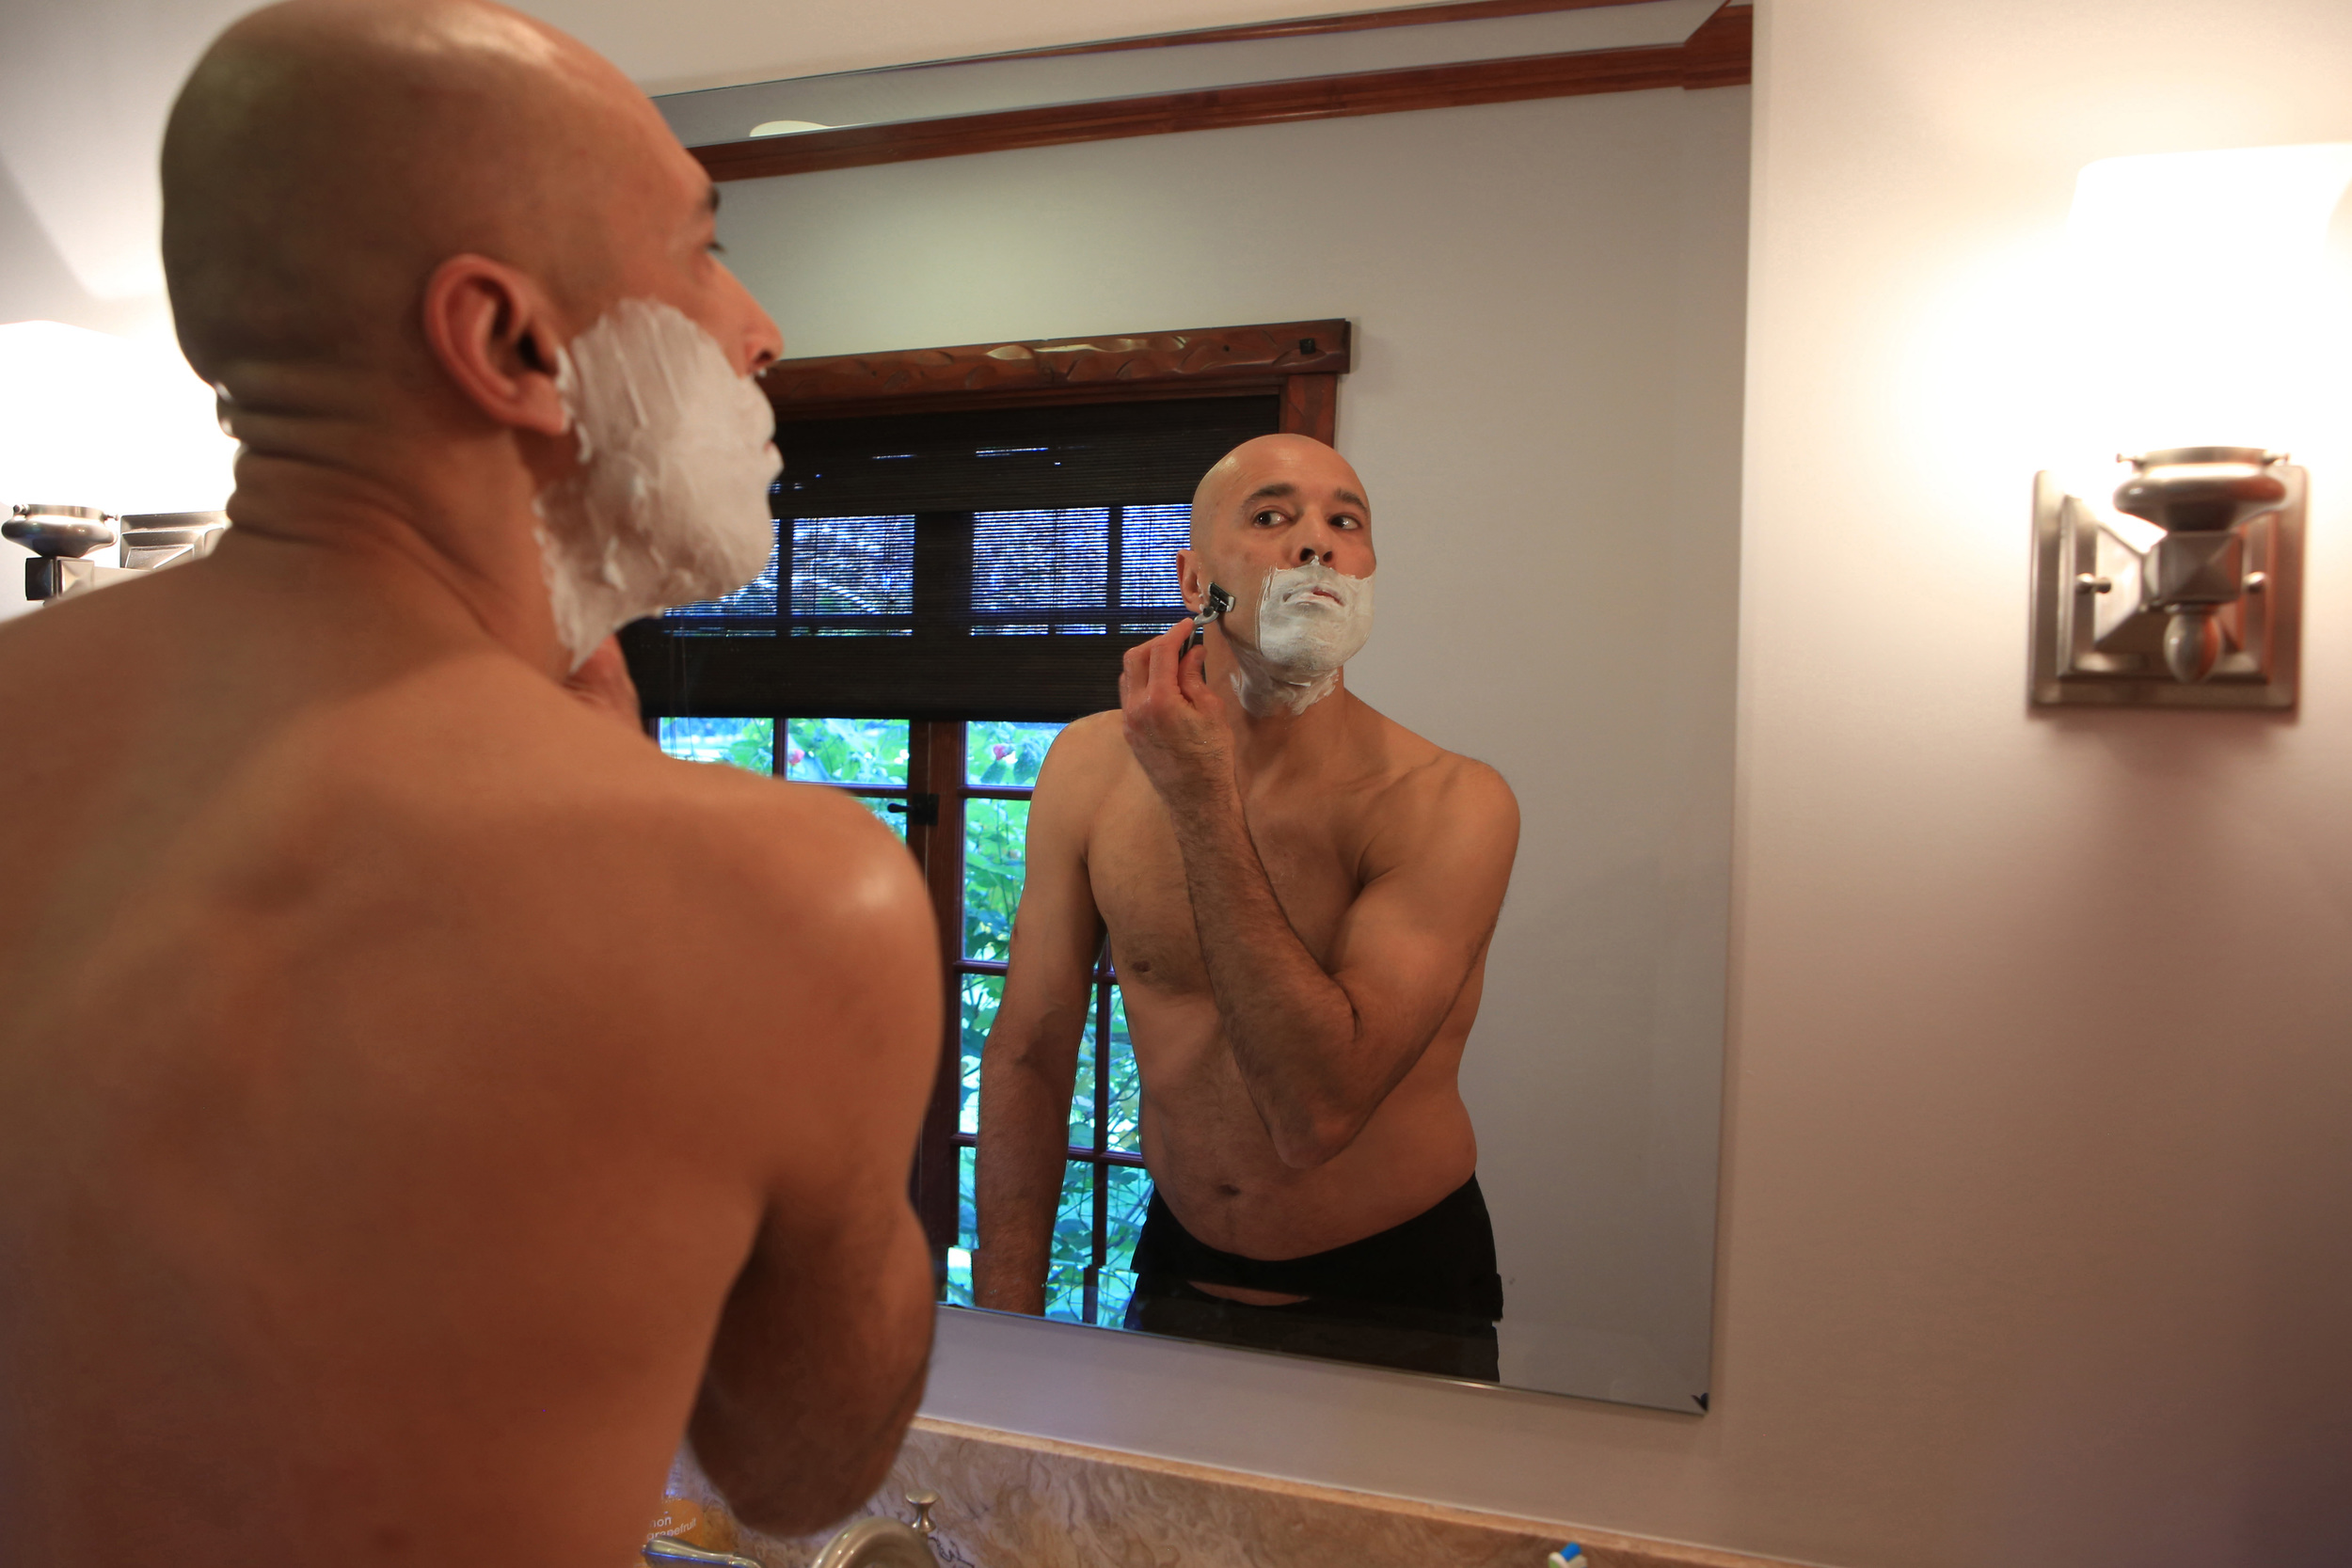 Early morning rituals start at 7am for 49-year-old Gracie, the UFC legend, with shaving and taking his daughter to school before starting a rigorous training schedule. (©Gail Fisher for ESPN)